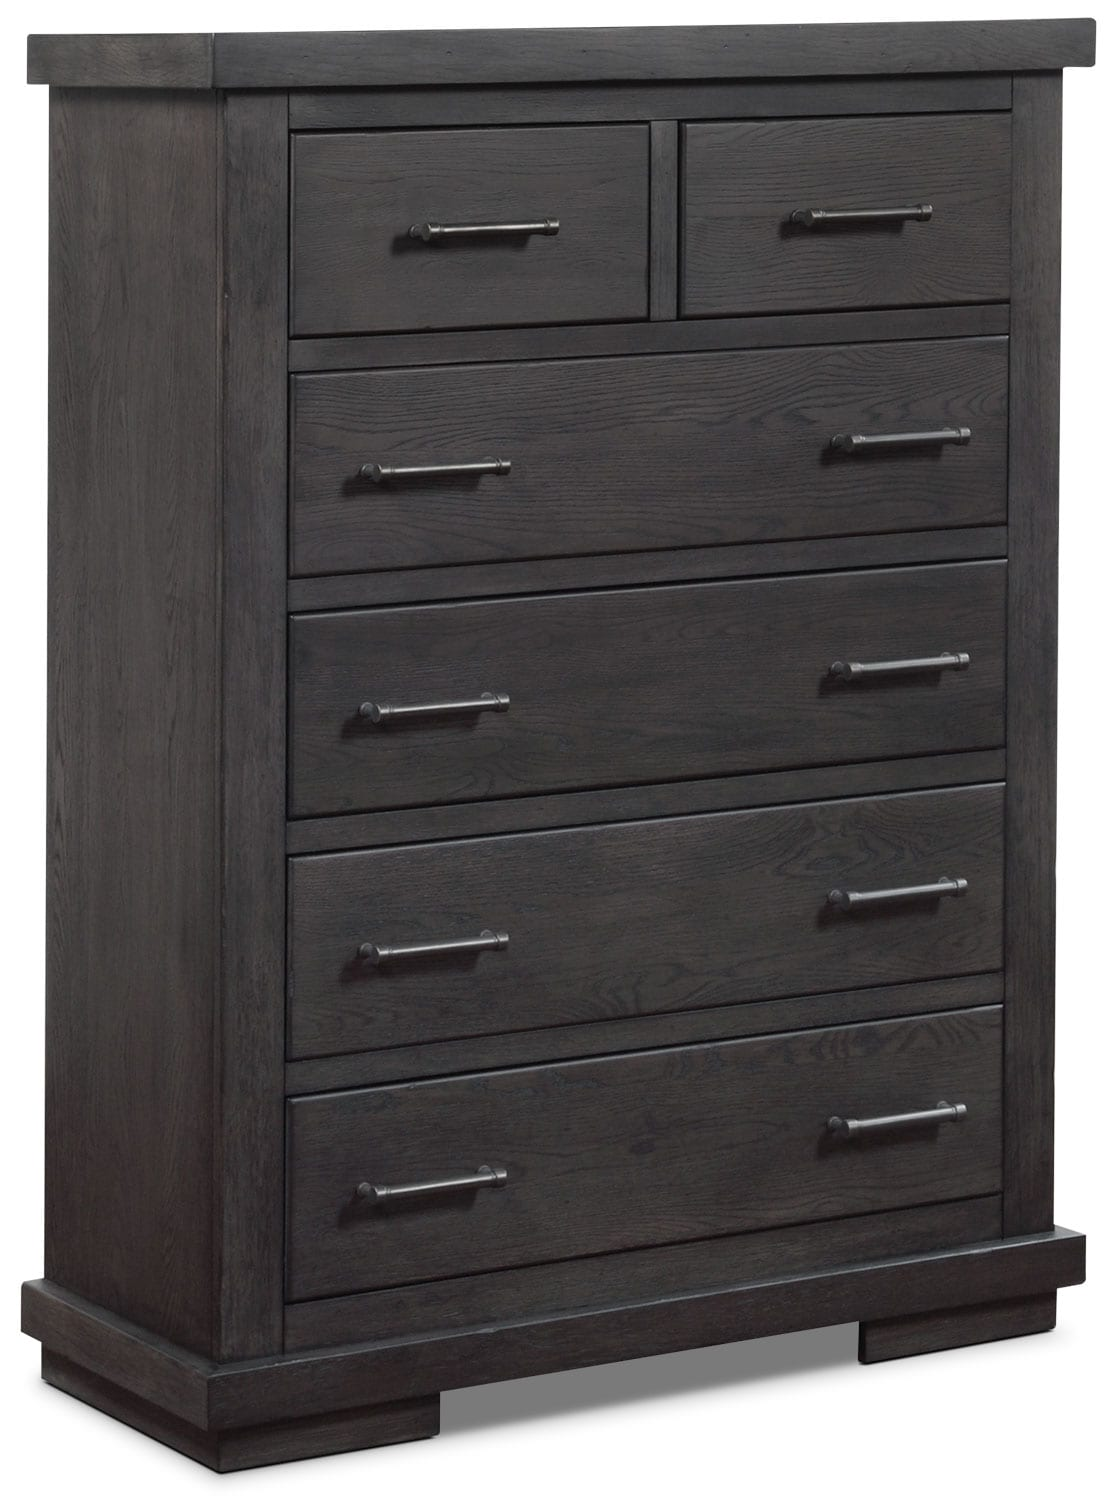 Bedroom Furniture - Revolution Chest